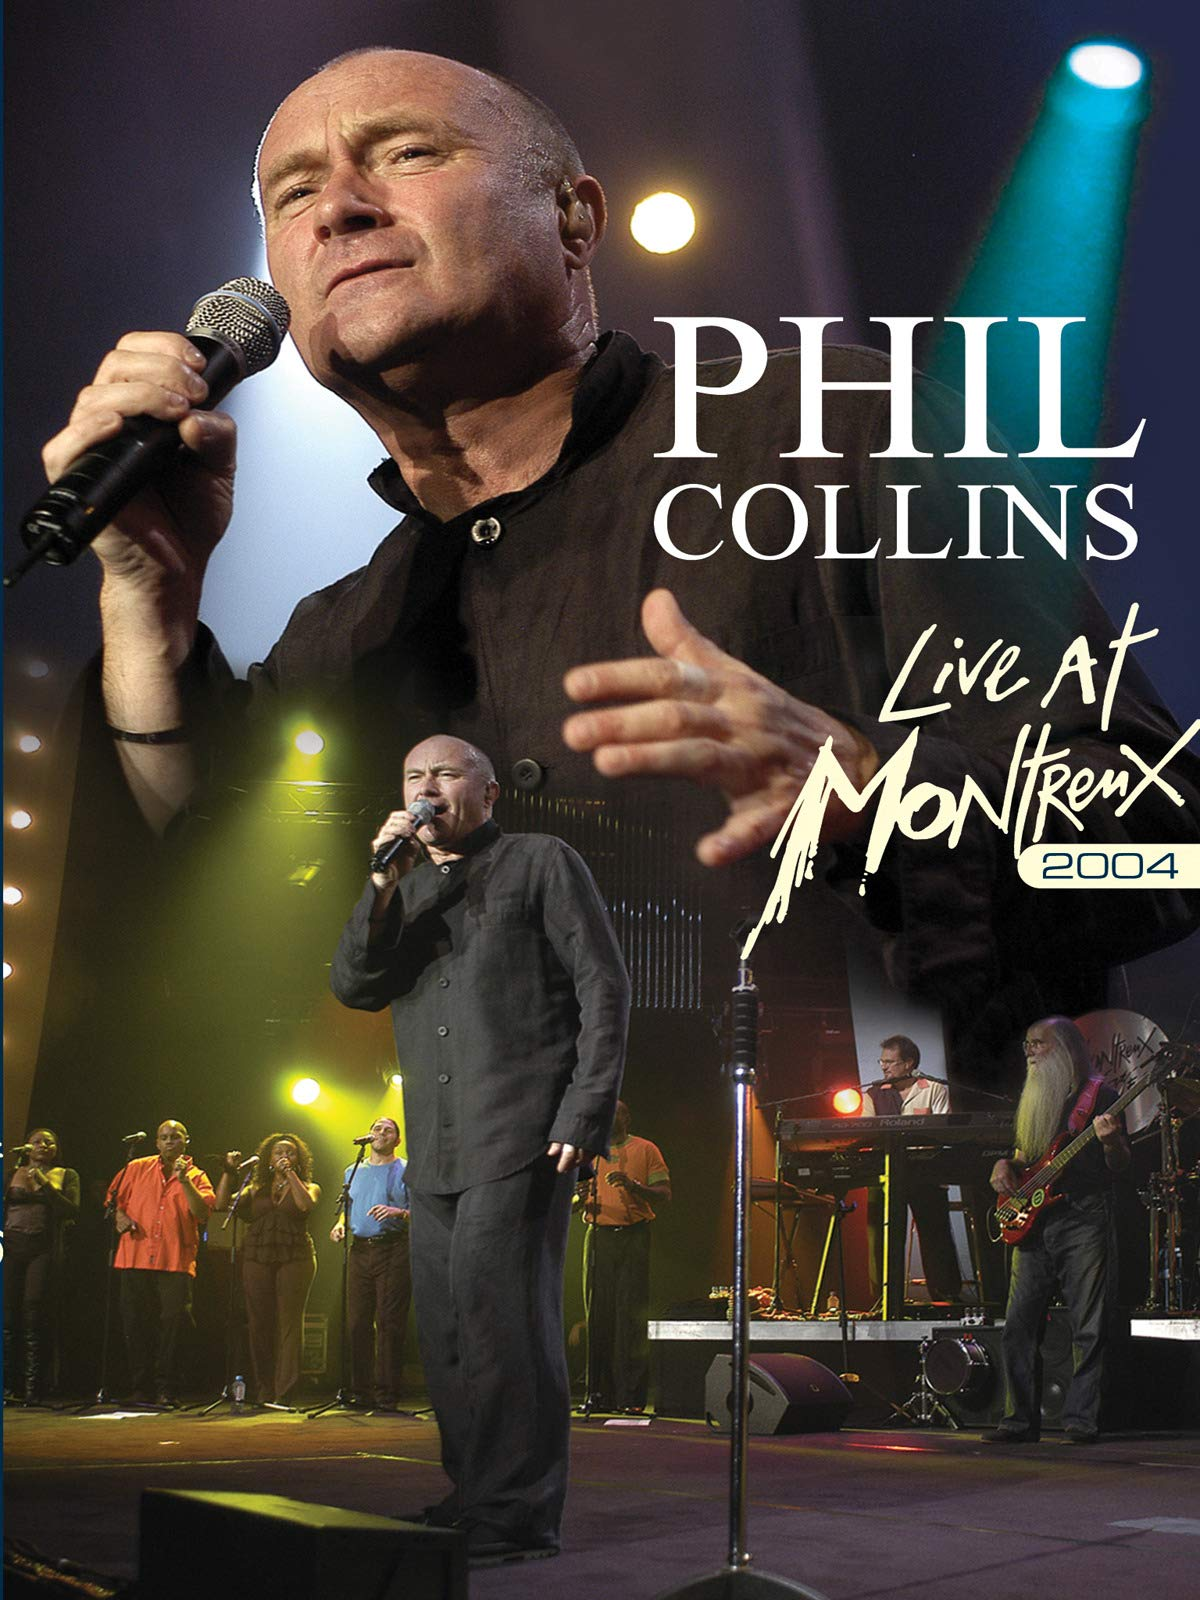 Phil Collins - Live At Montreux 2004 on Amazon Prime Video UK